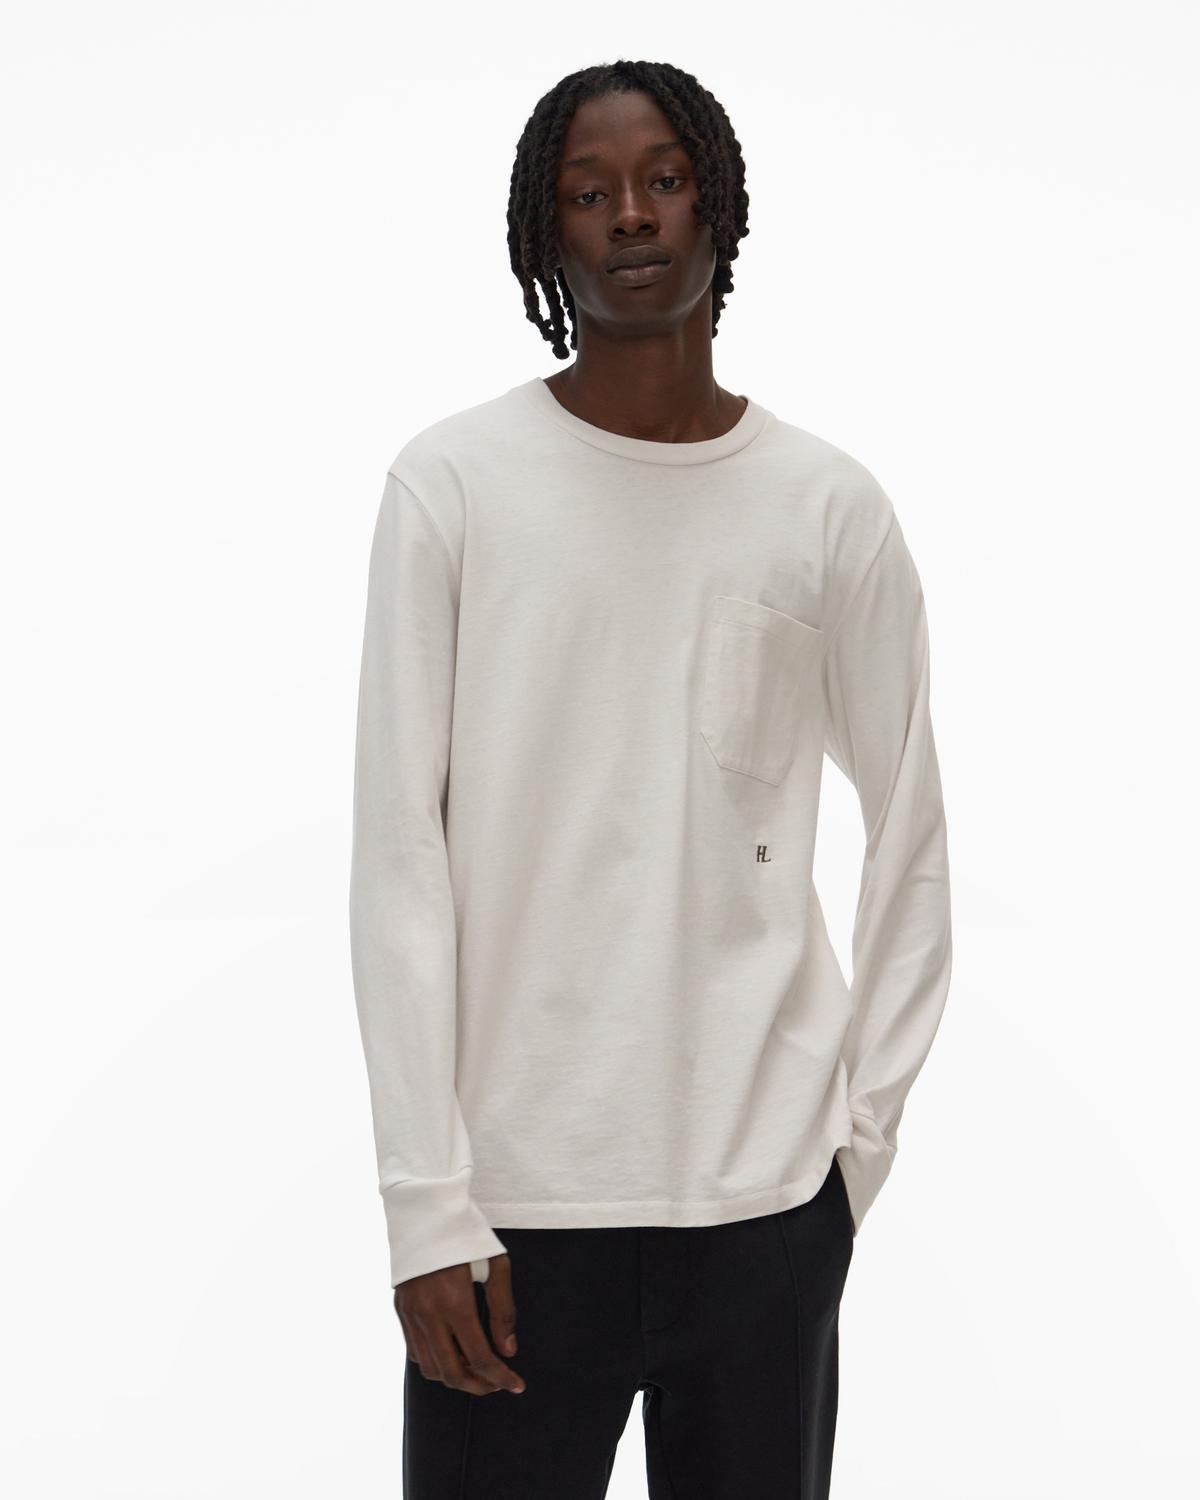 Strap Long Sleeve Tee